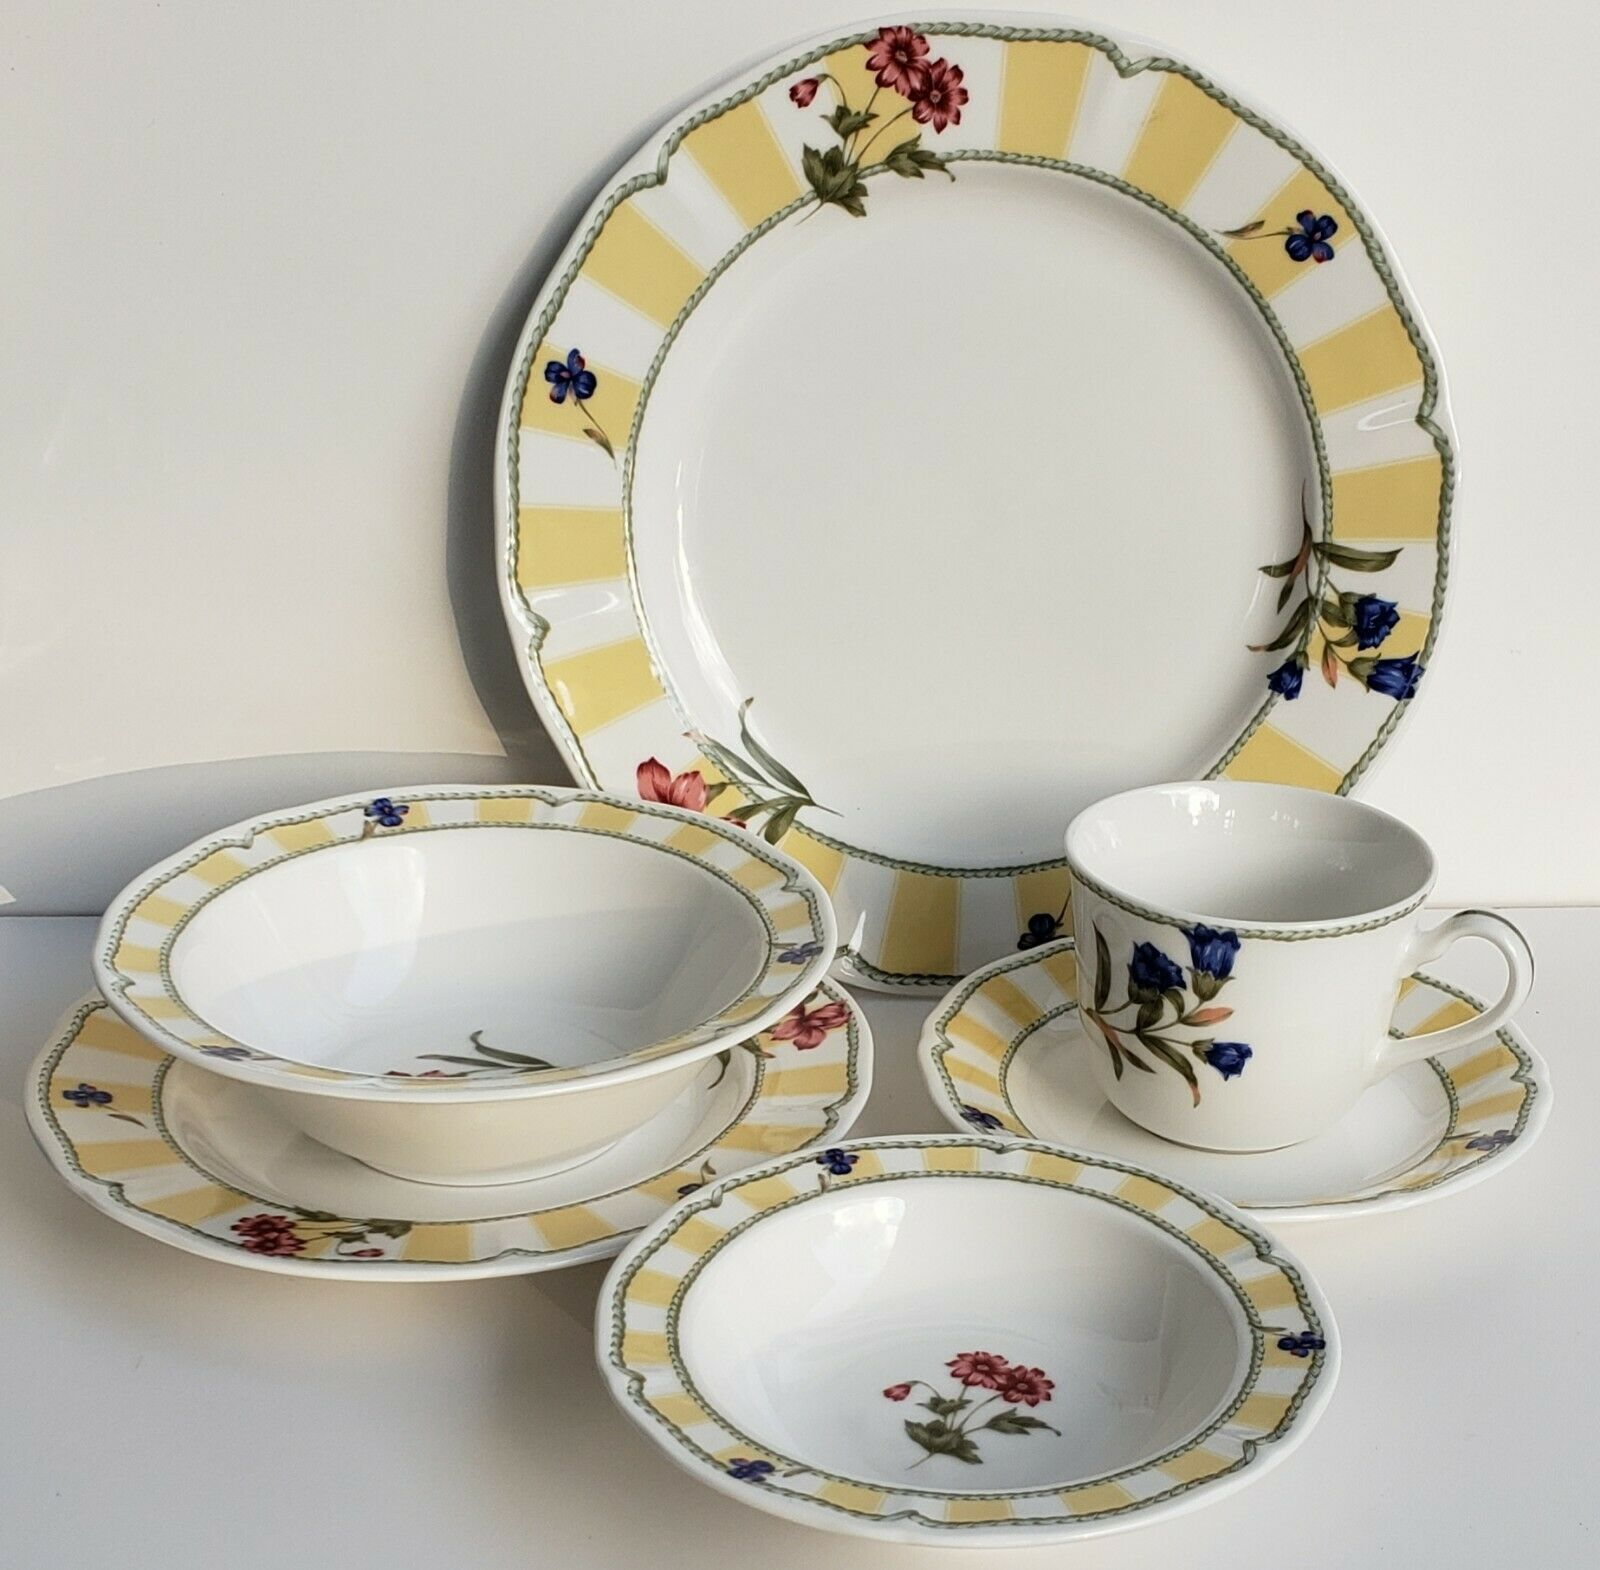 Primary image for (1) 6 Pc. Homecraft by Noritake Summer Estate 9212 Dinnerware Place Set Korea